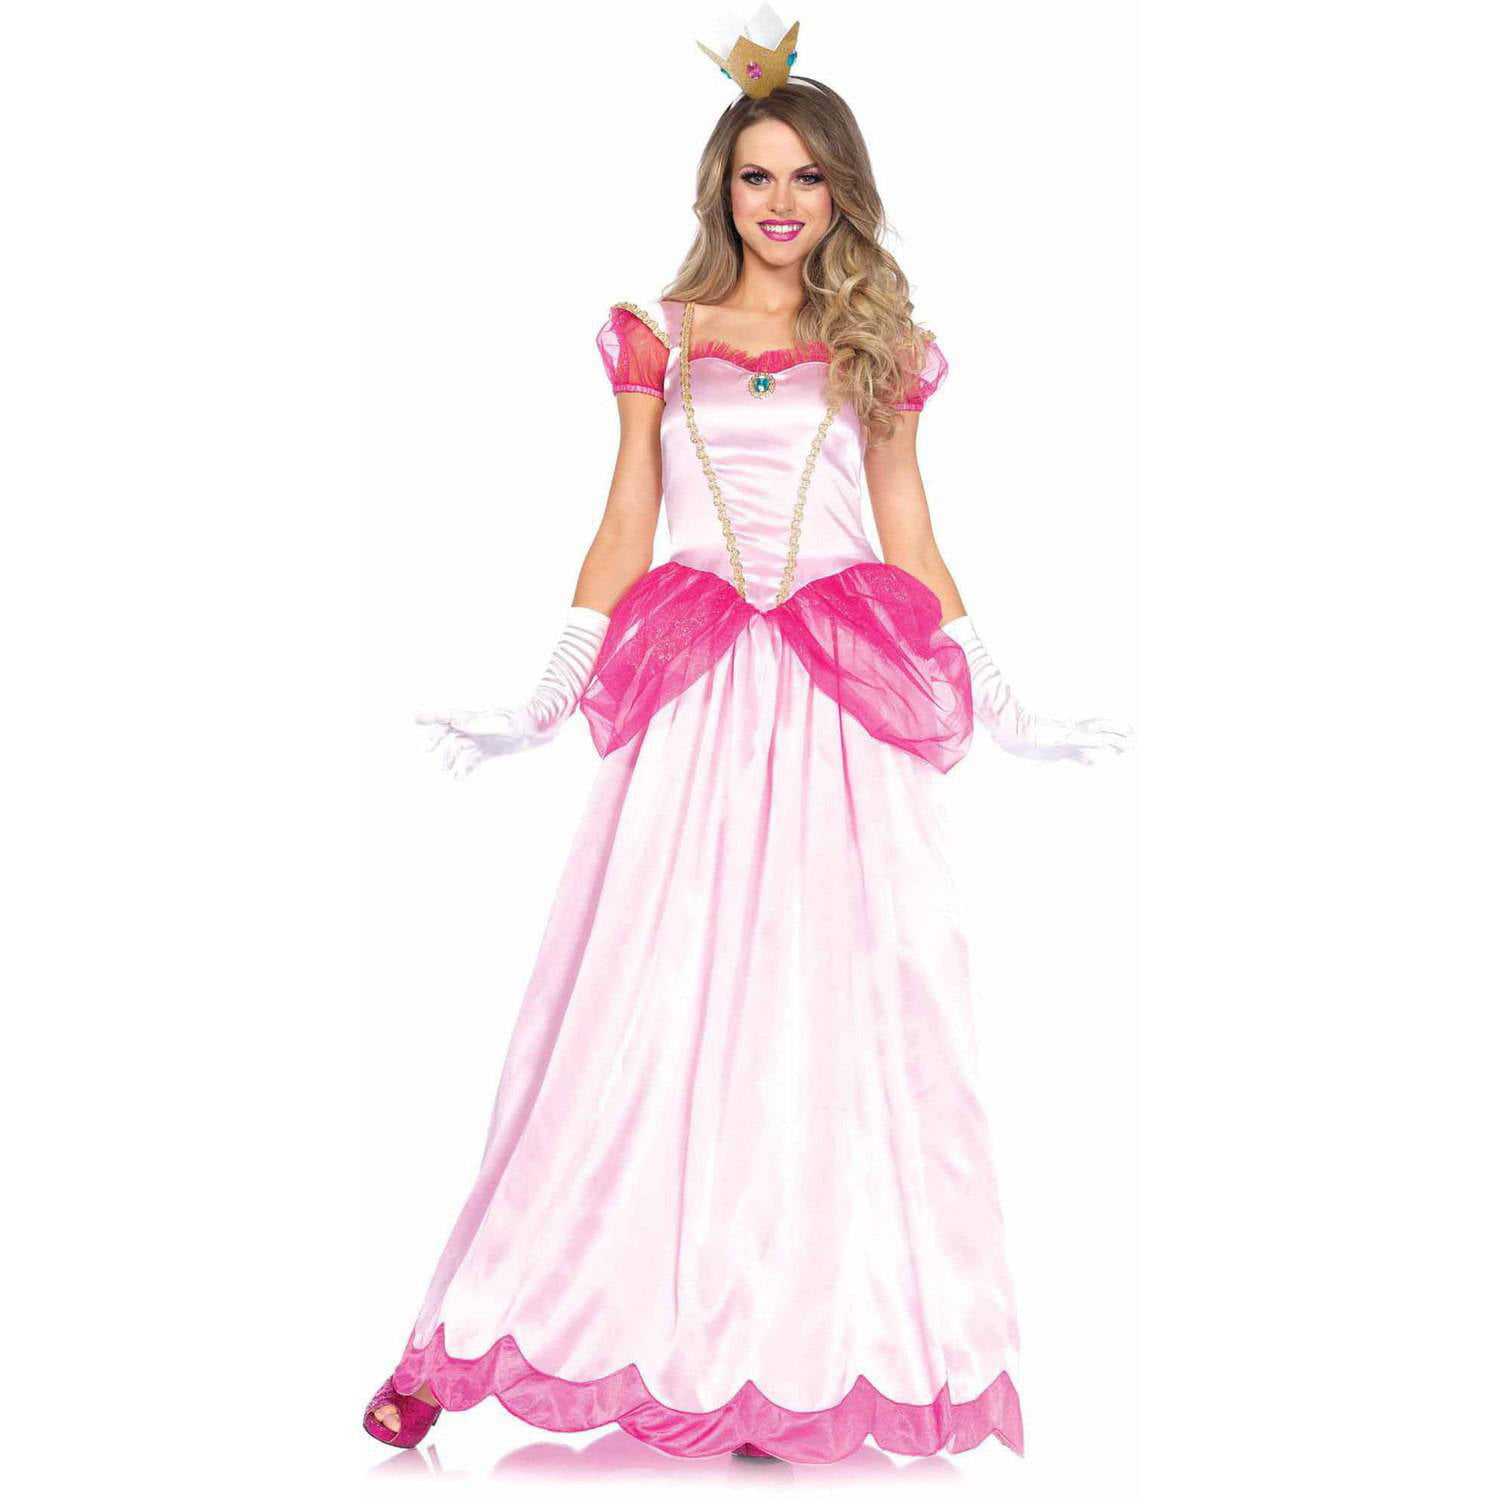 Leg Avenue 2-Piece Classic Pink Princess Adult Halloween Costume - Walmart.com  sc 1 st  Walmart & Leg Avenue 2-Piece Classic Pink Princess Adult Halloween Costume ...